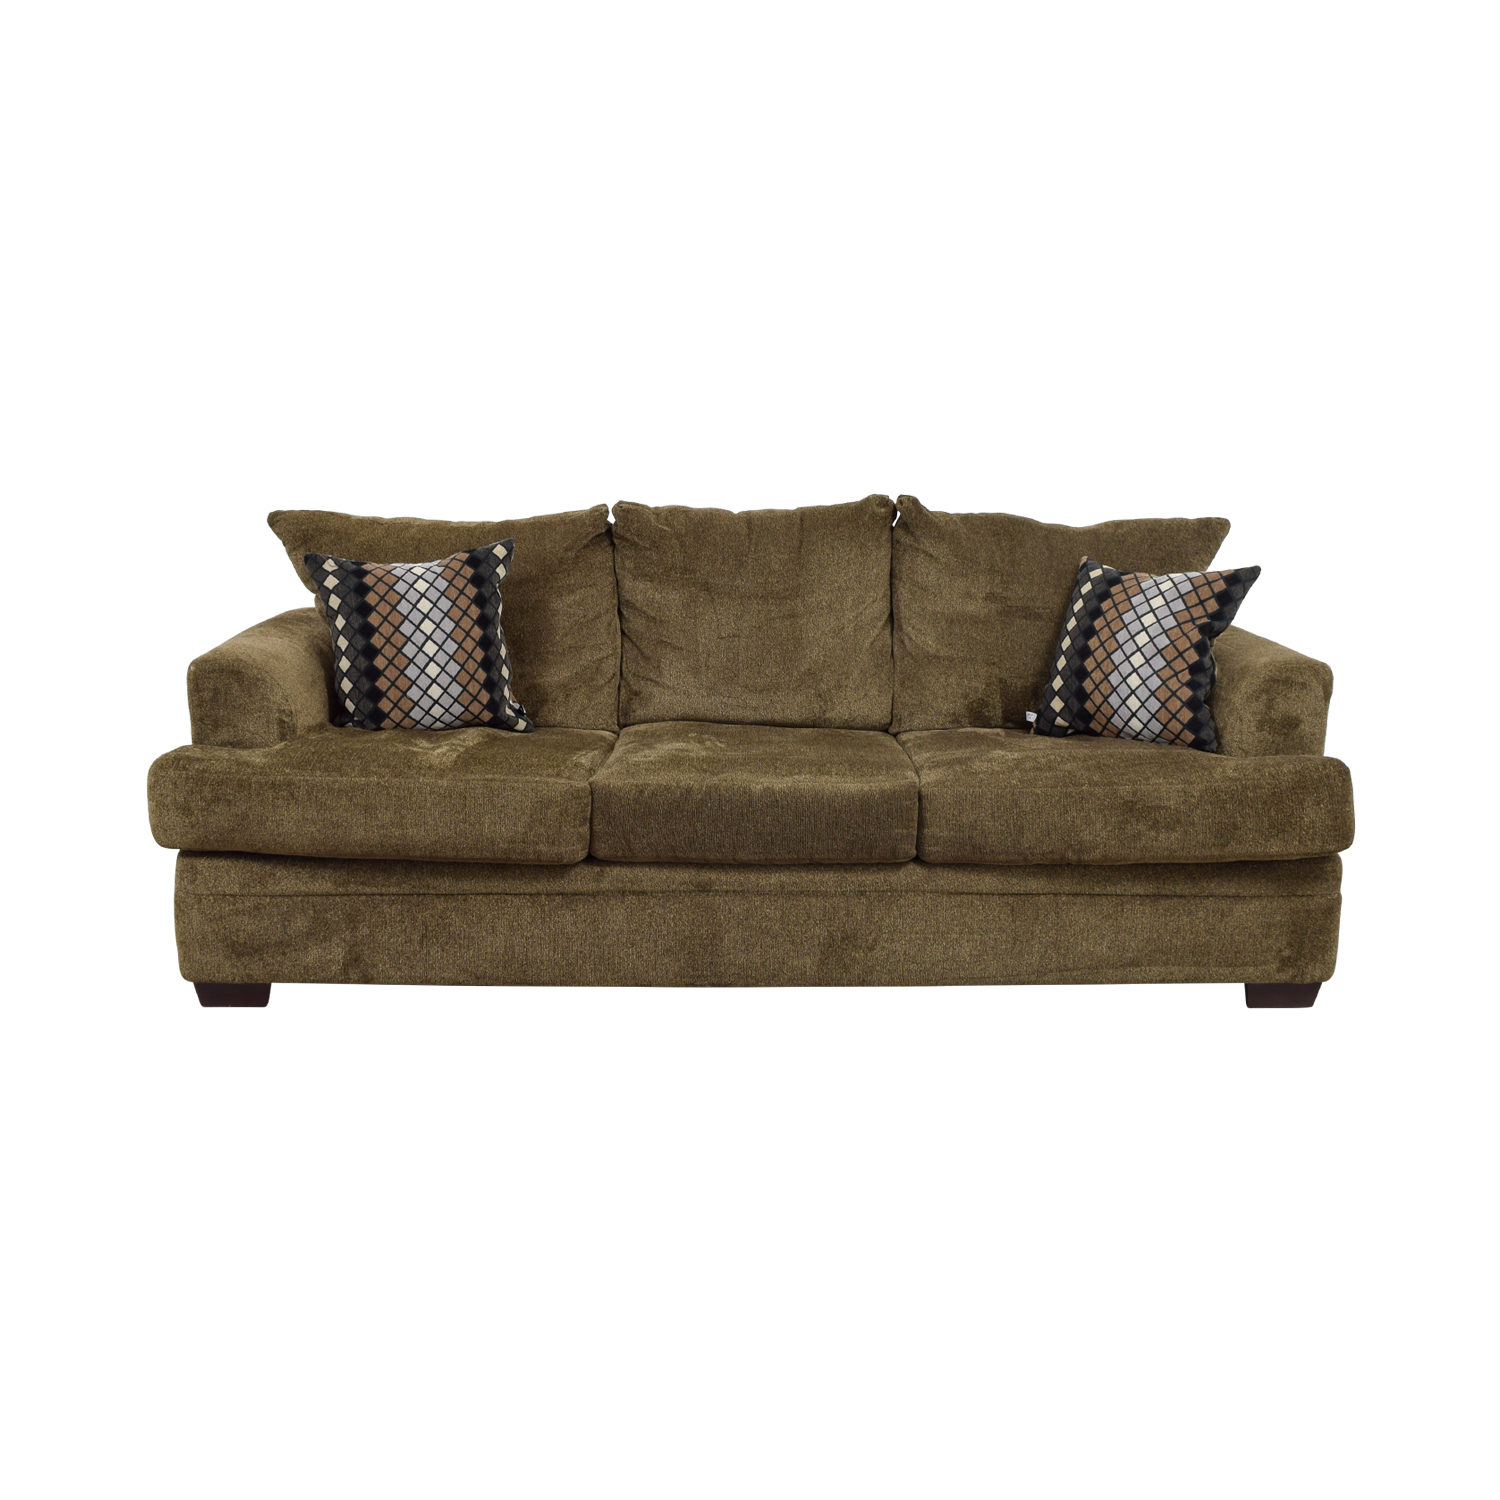 Three-Cushion Tan Sofa